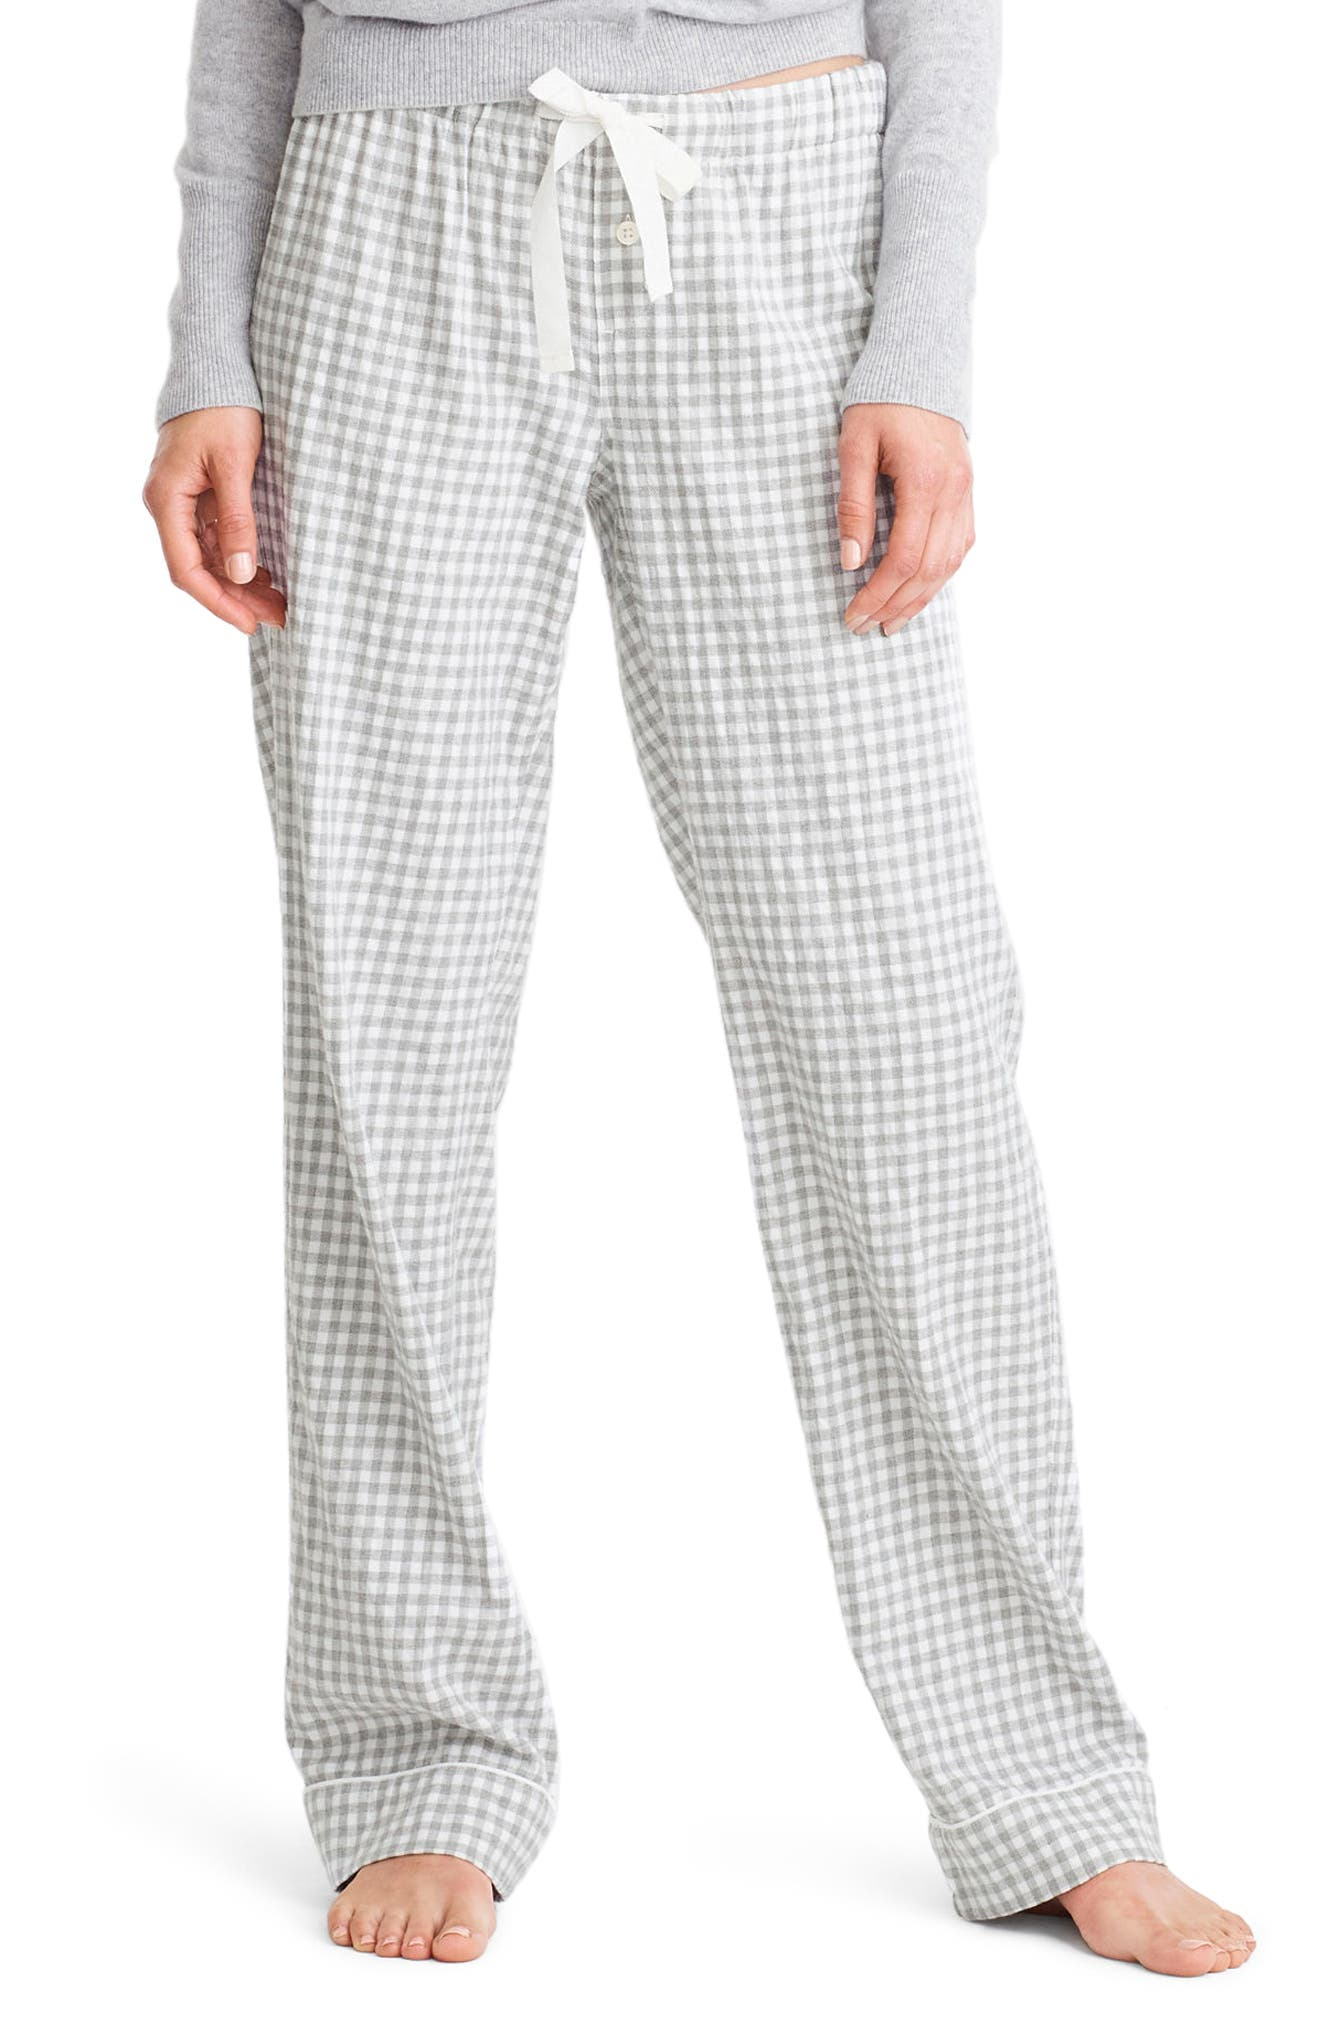 Alternate Image 1 Selected - J.Crew Grey Gingham Pajama Pants